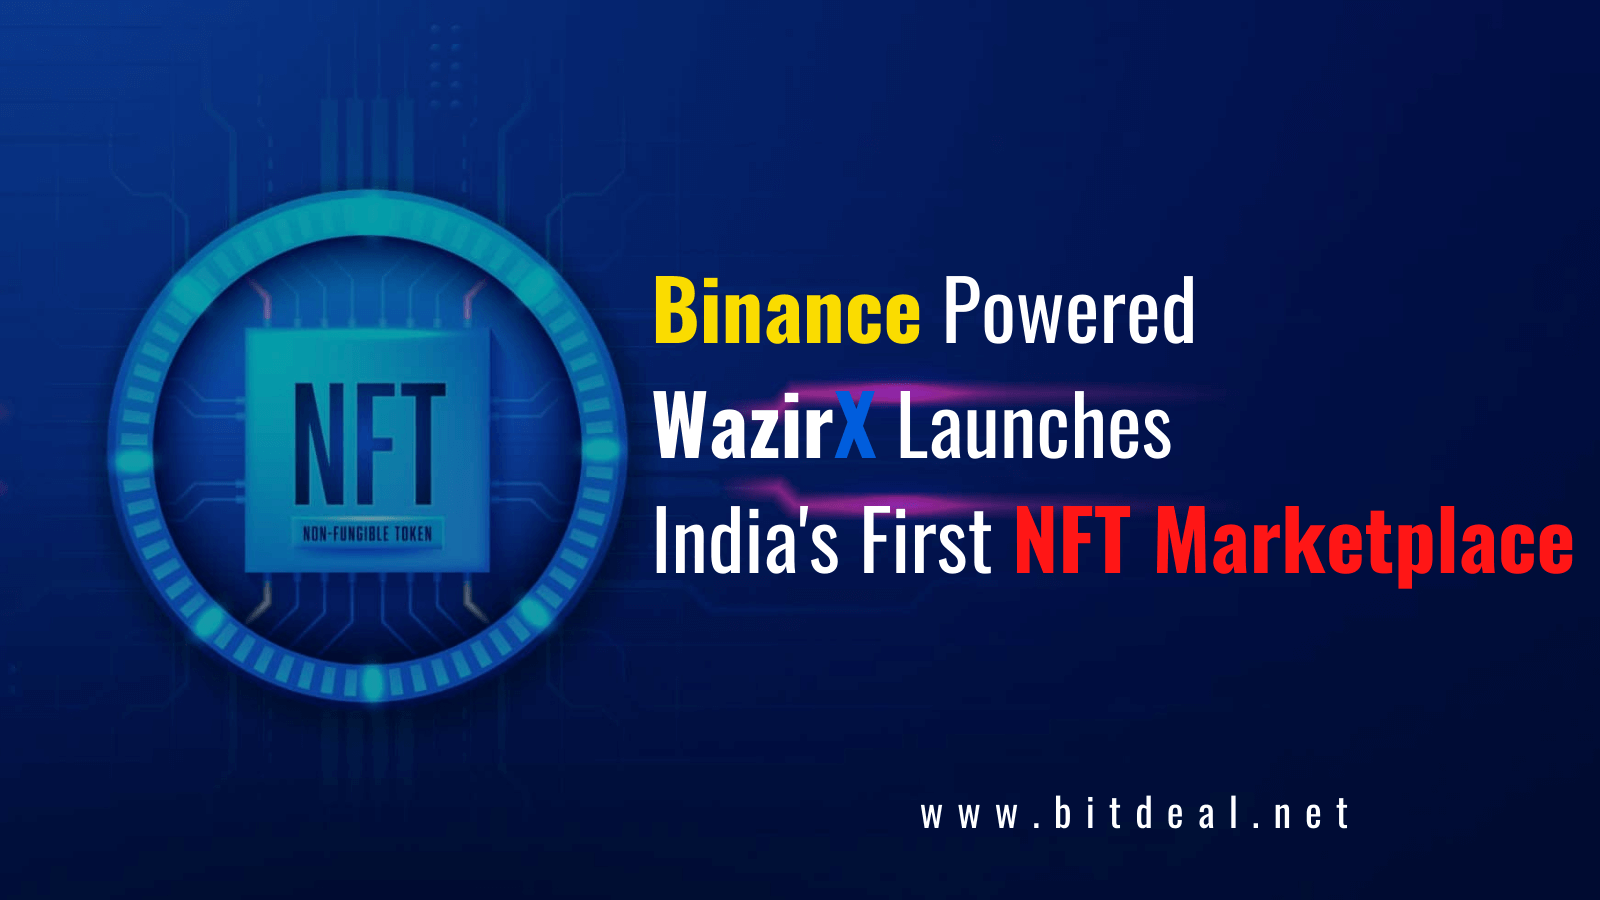 Wazirx Launches India's First NFT Marketplace On Binance Smart Chain